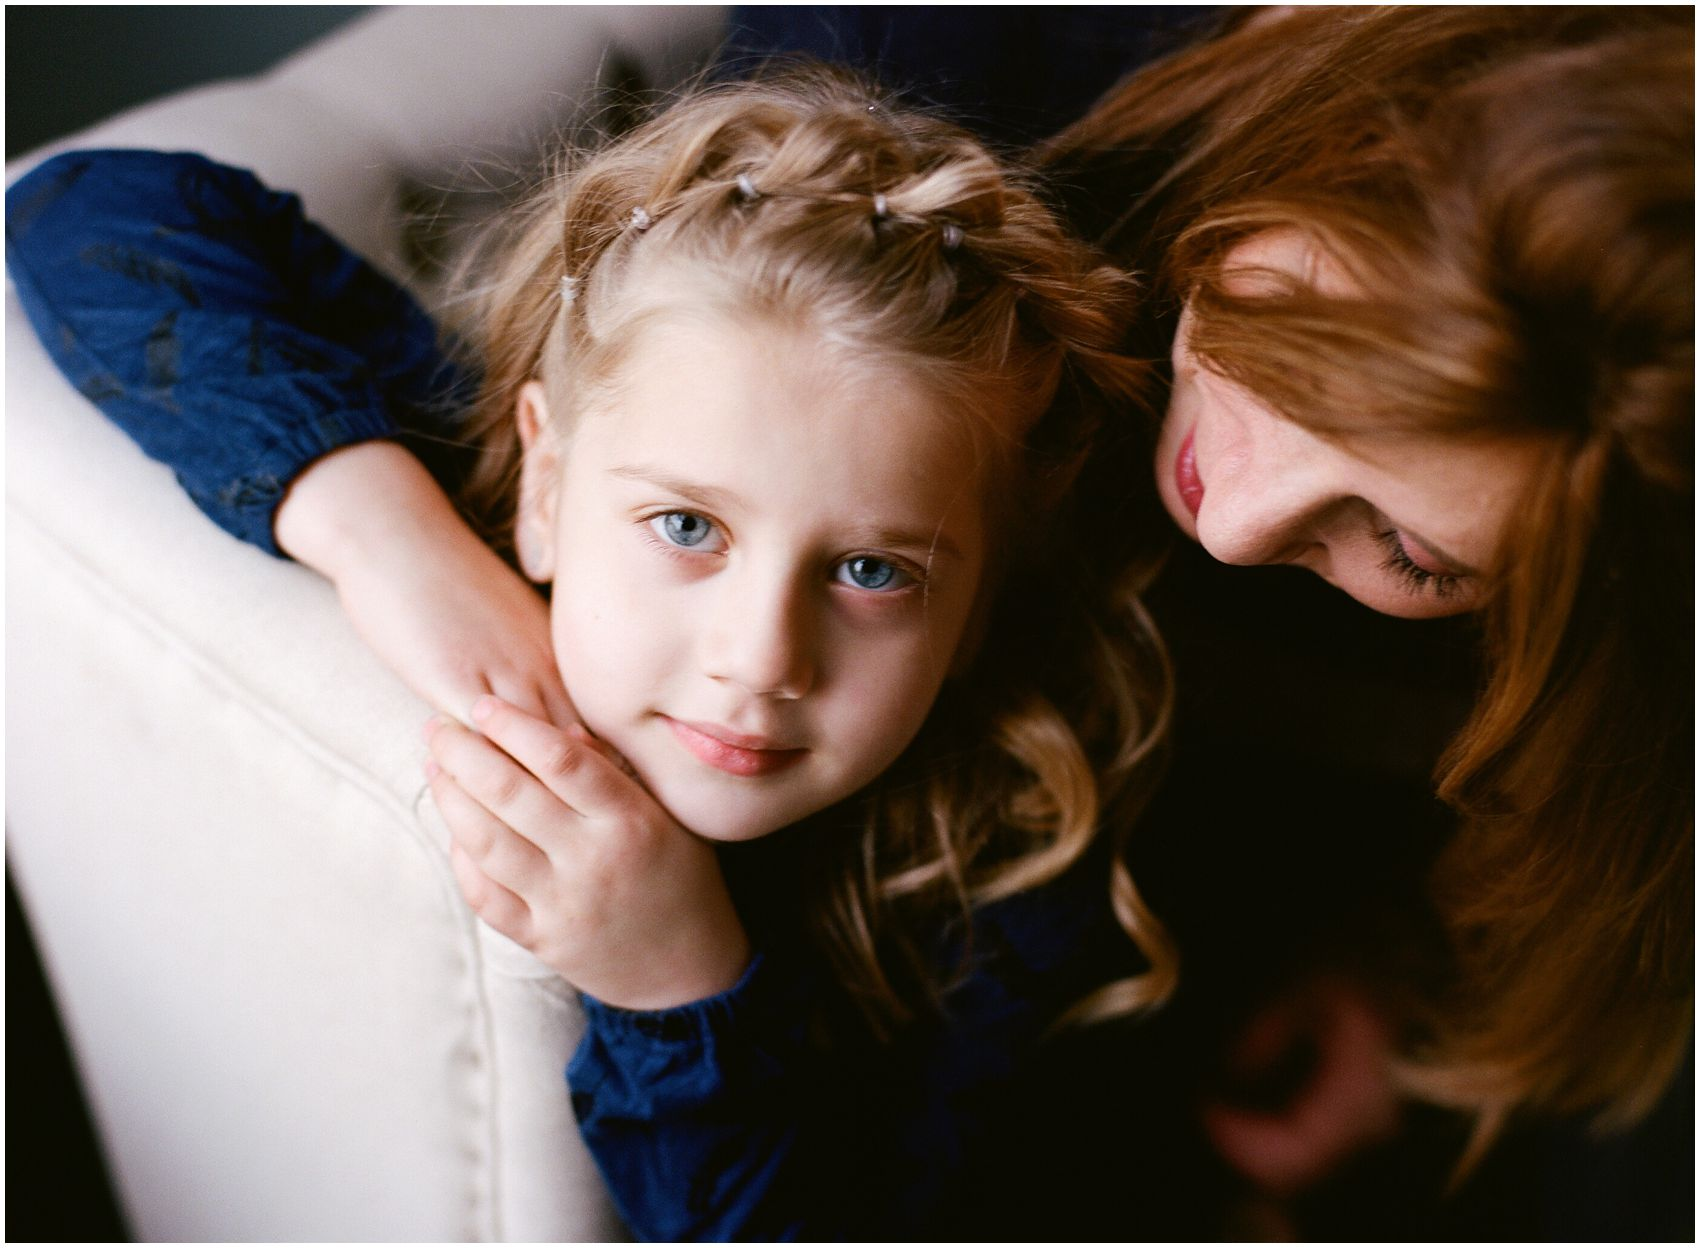 blond girl with blue eyes sitting with her mom